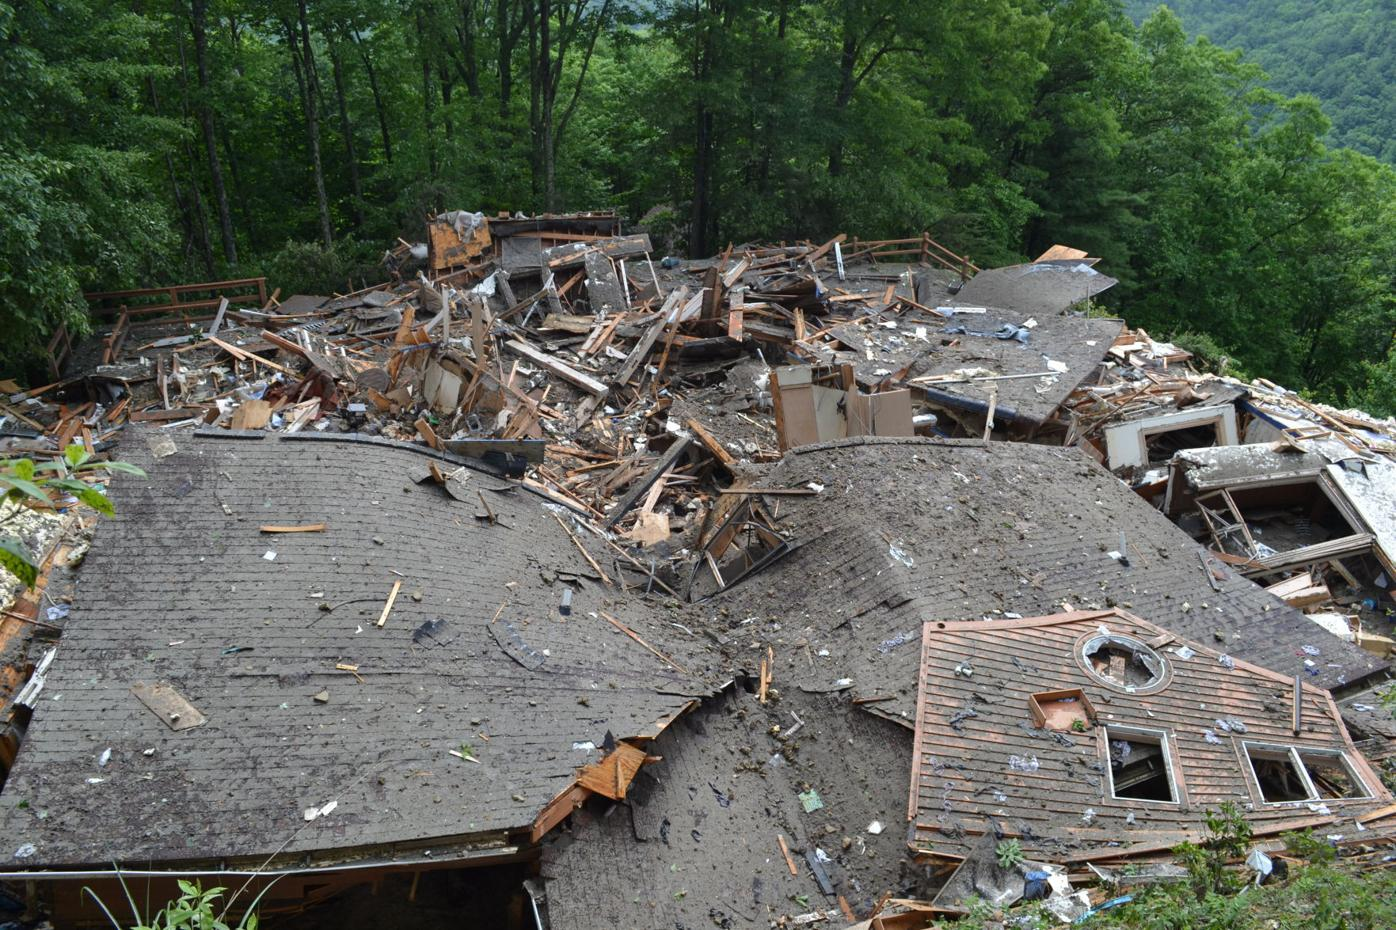 Collapsed house (top)